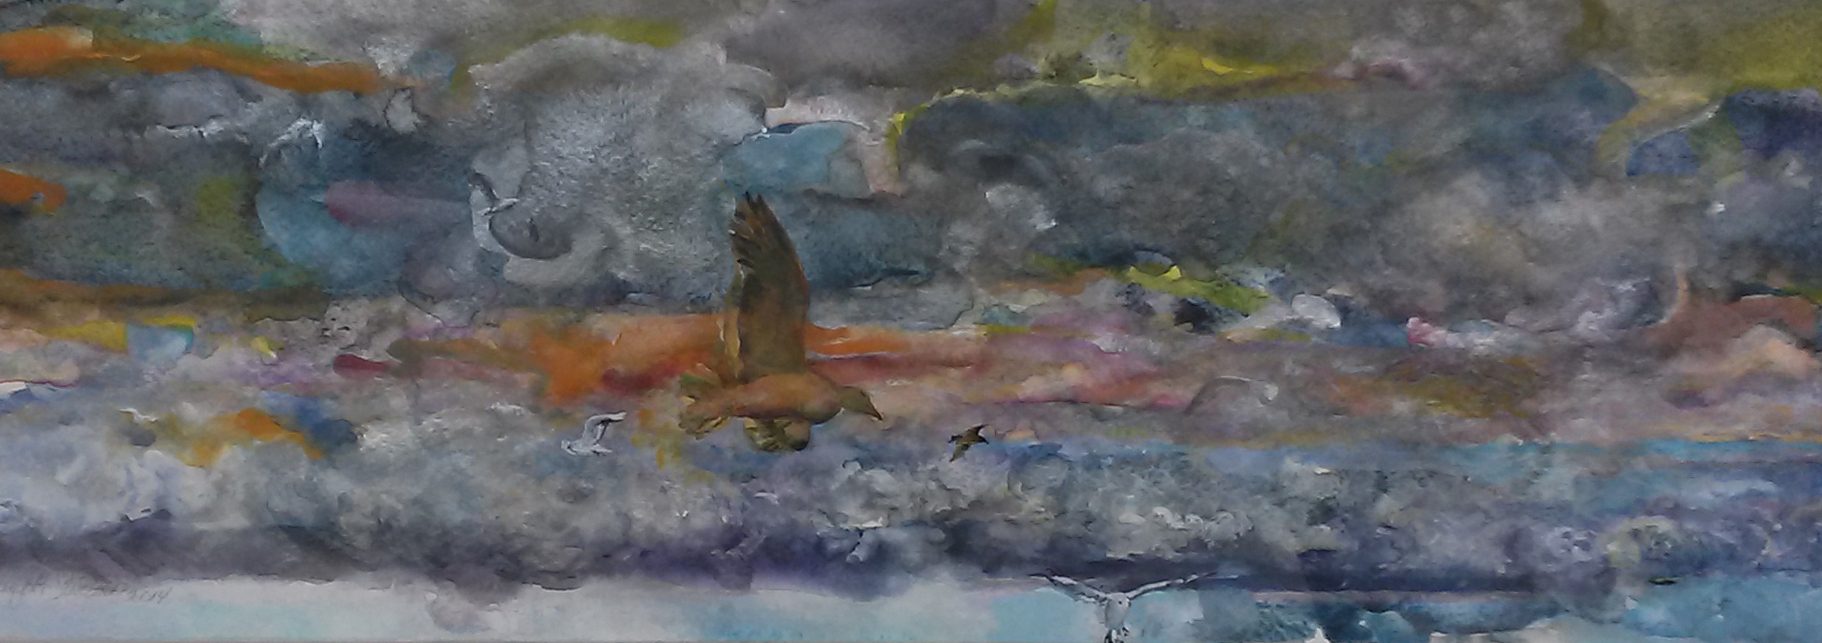 After the Storm (DETAIL), watercolor and gouache on watercolor paper, 6 x 40 1/4 inches, 2012-14